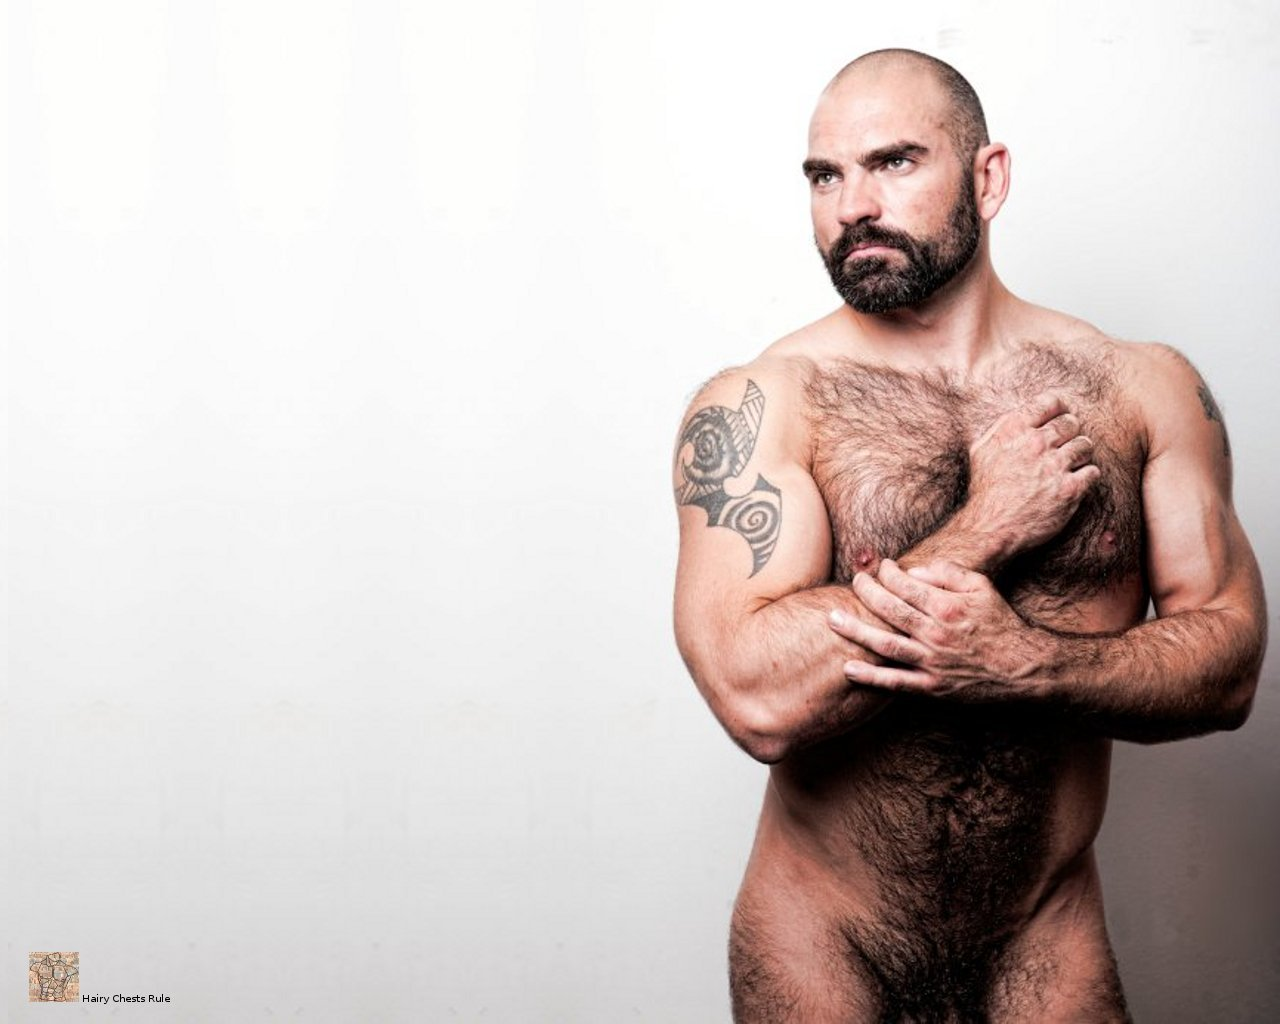 HairyChestsRuleYourDesktop: 0021-0030wallpapers of men with hairy ...